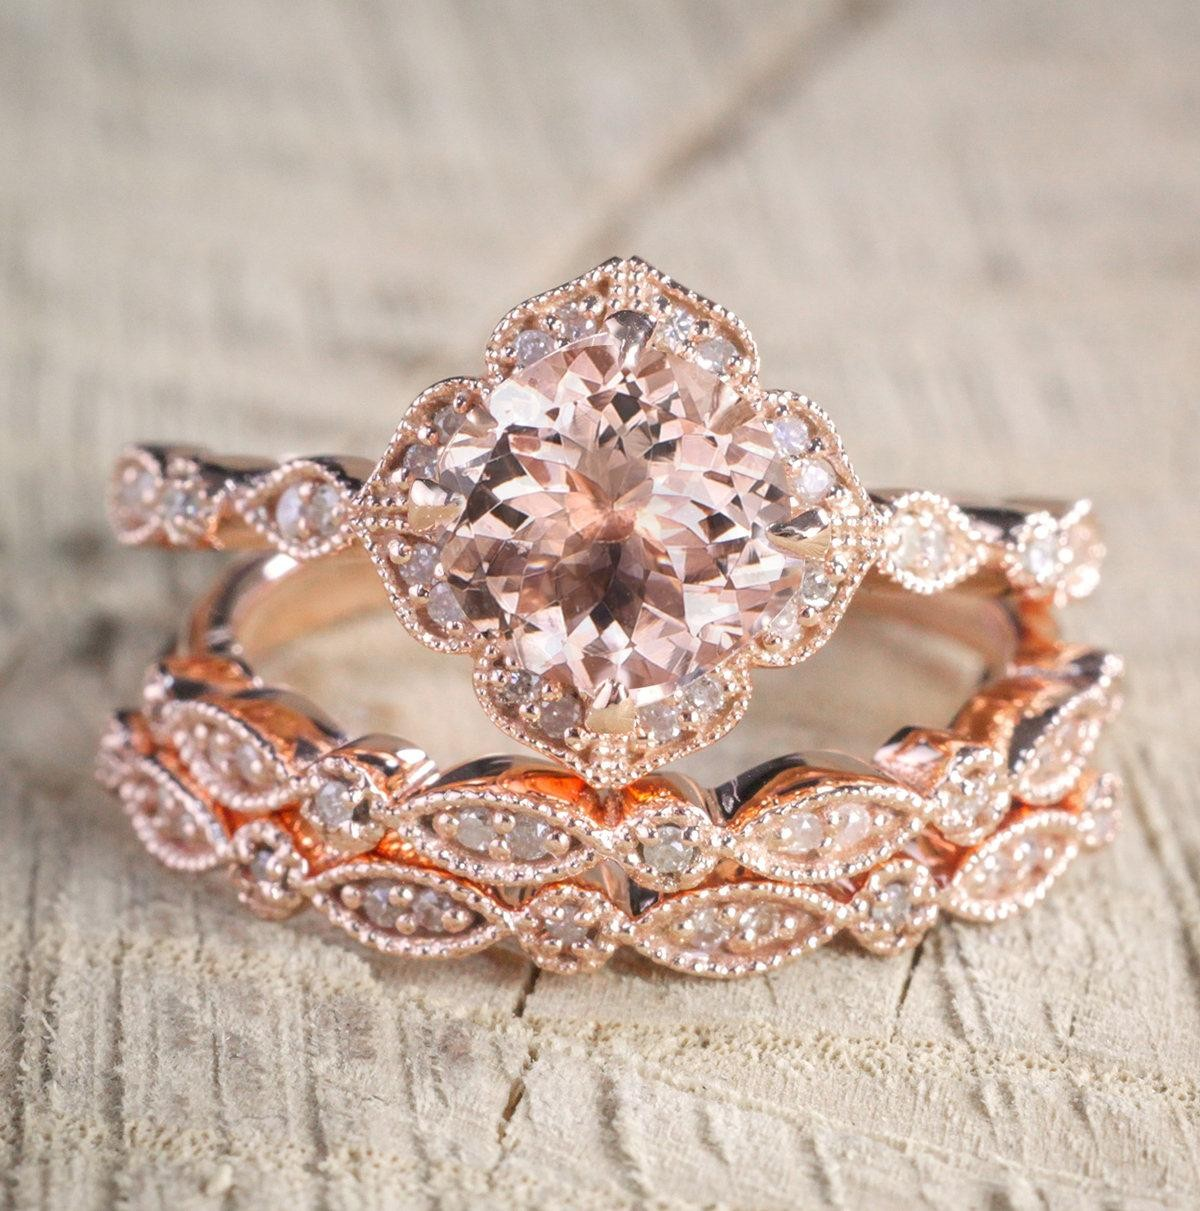 2 Carat Morganite And Diamond Trio Wedding Bridal Ring Set In 10k Rose Gold  With One Engagement Ring And 2 Wedding Bands.